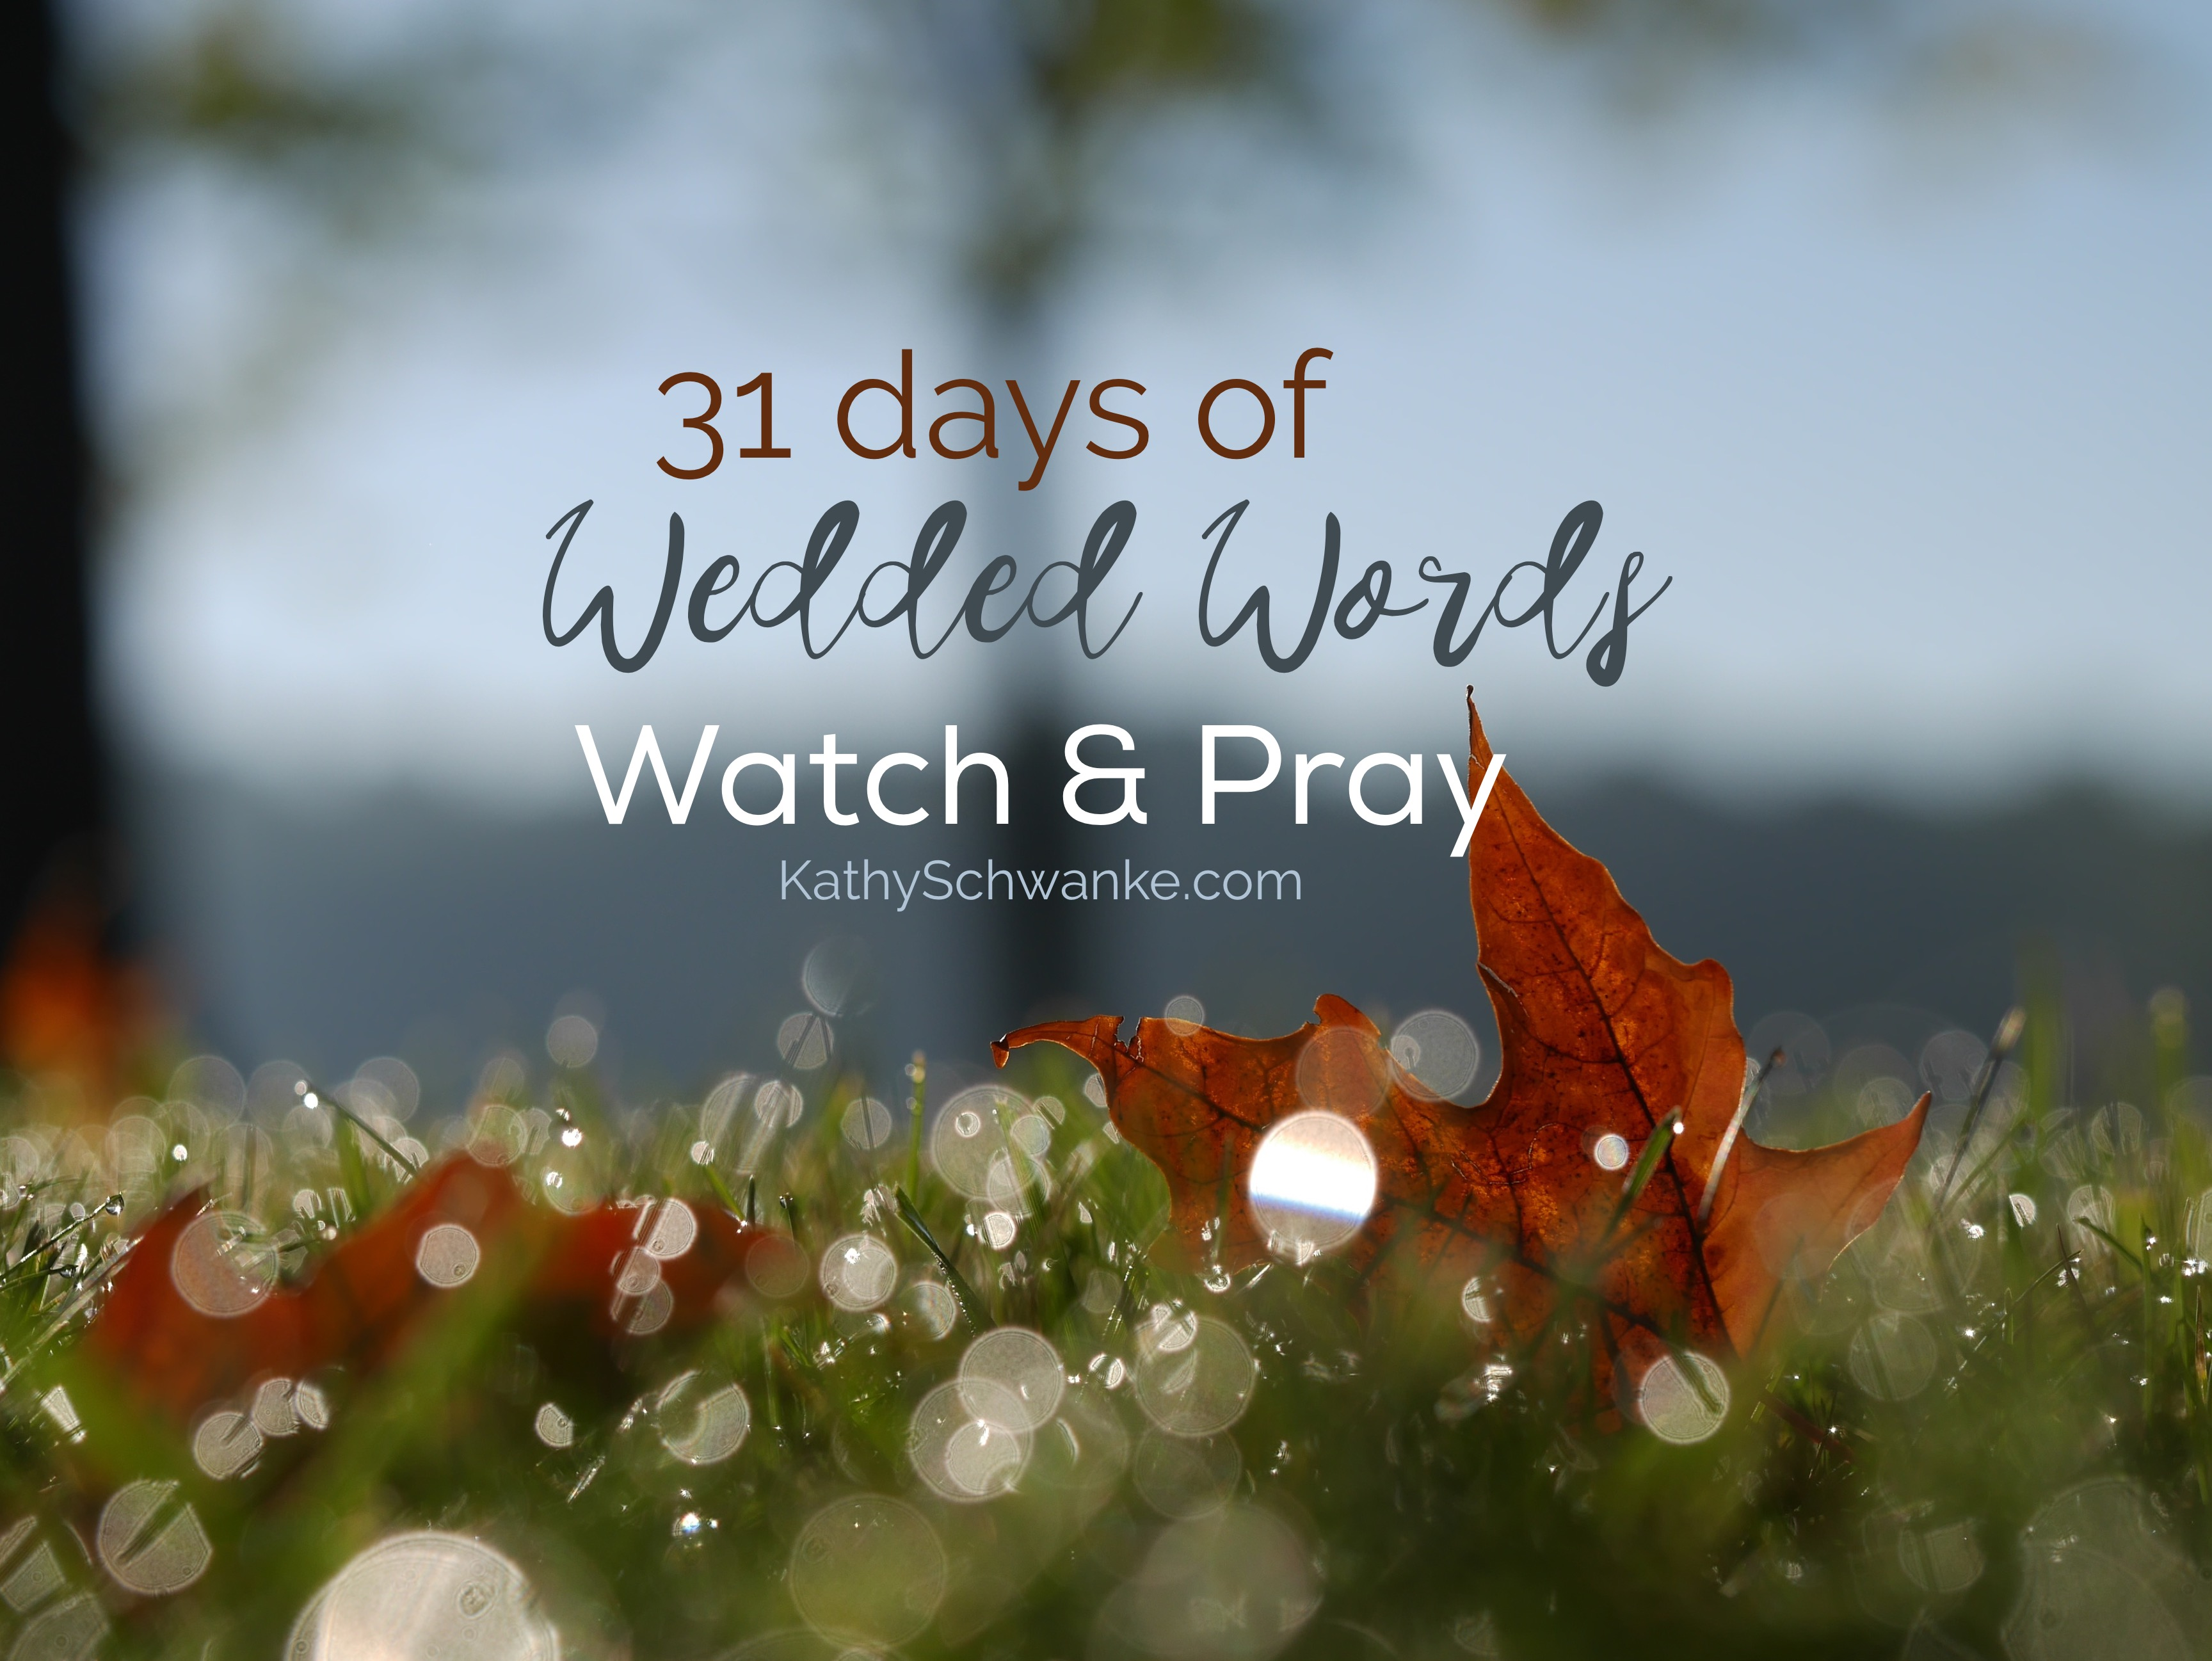 Watch & Pray: 31 Days of Wedded Words